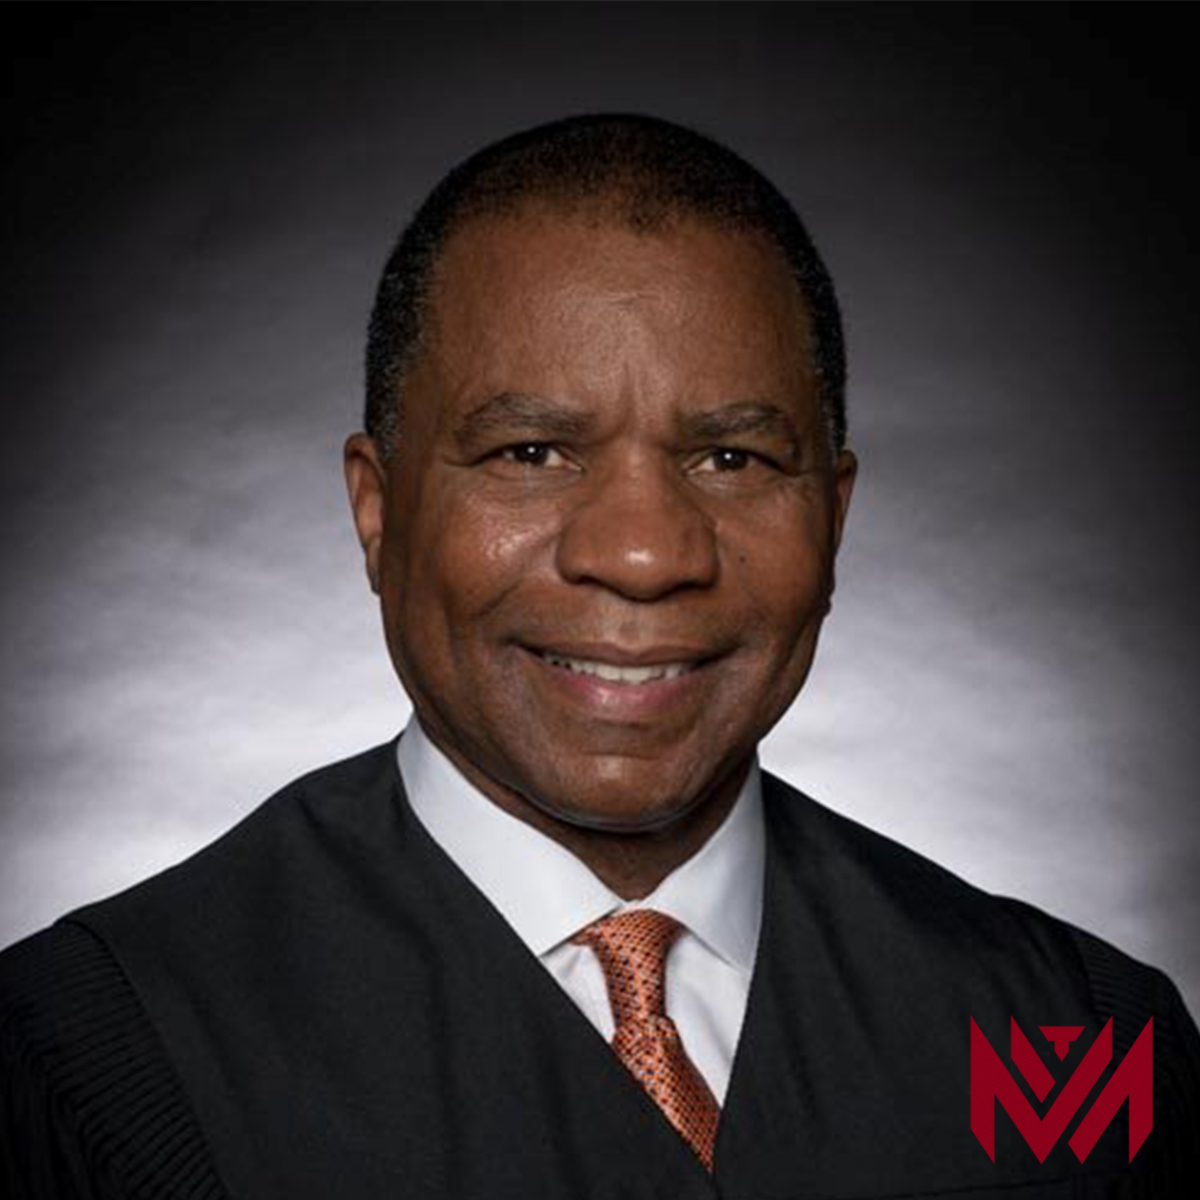 Judge Byron Williams